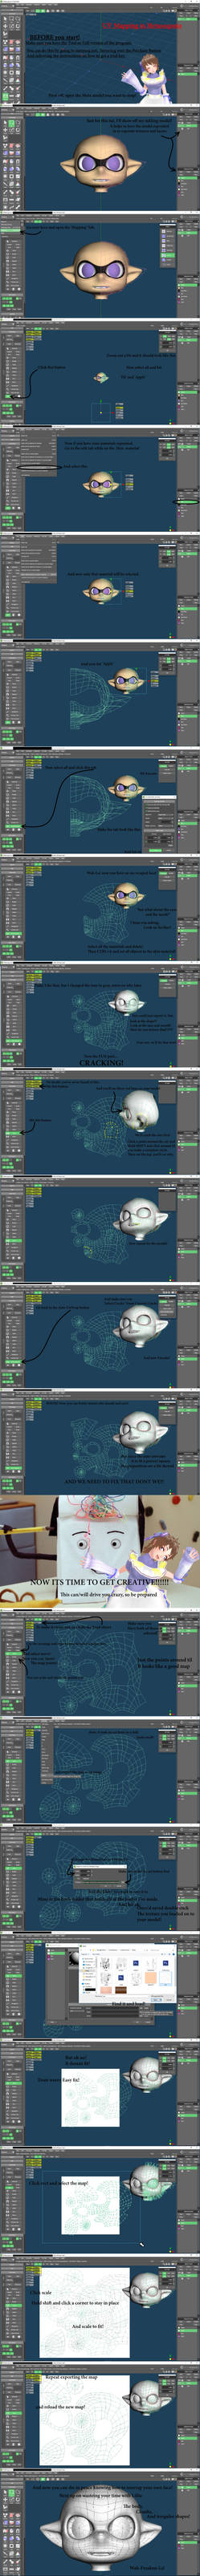 ||Meta+MMD||UV mapping in Metasequoia